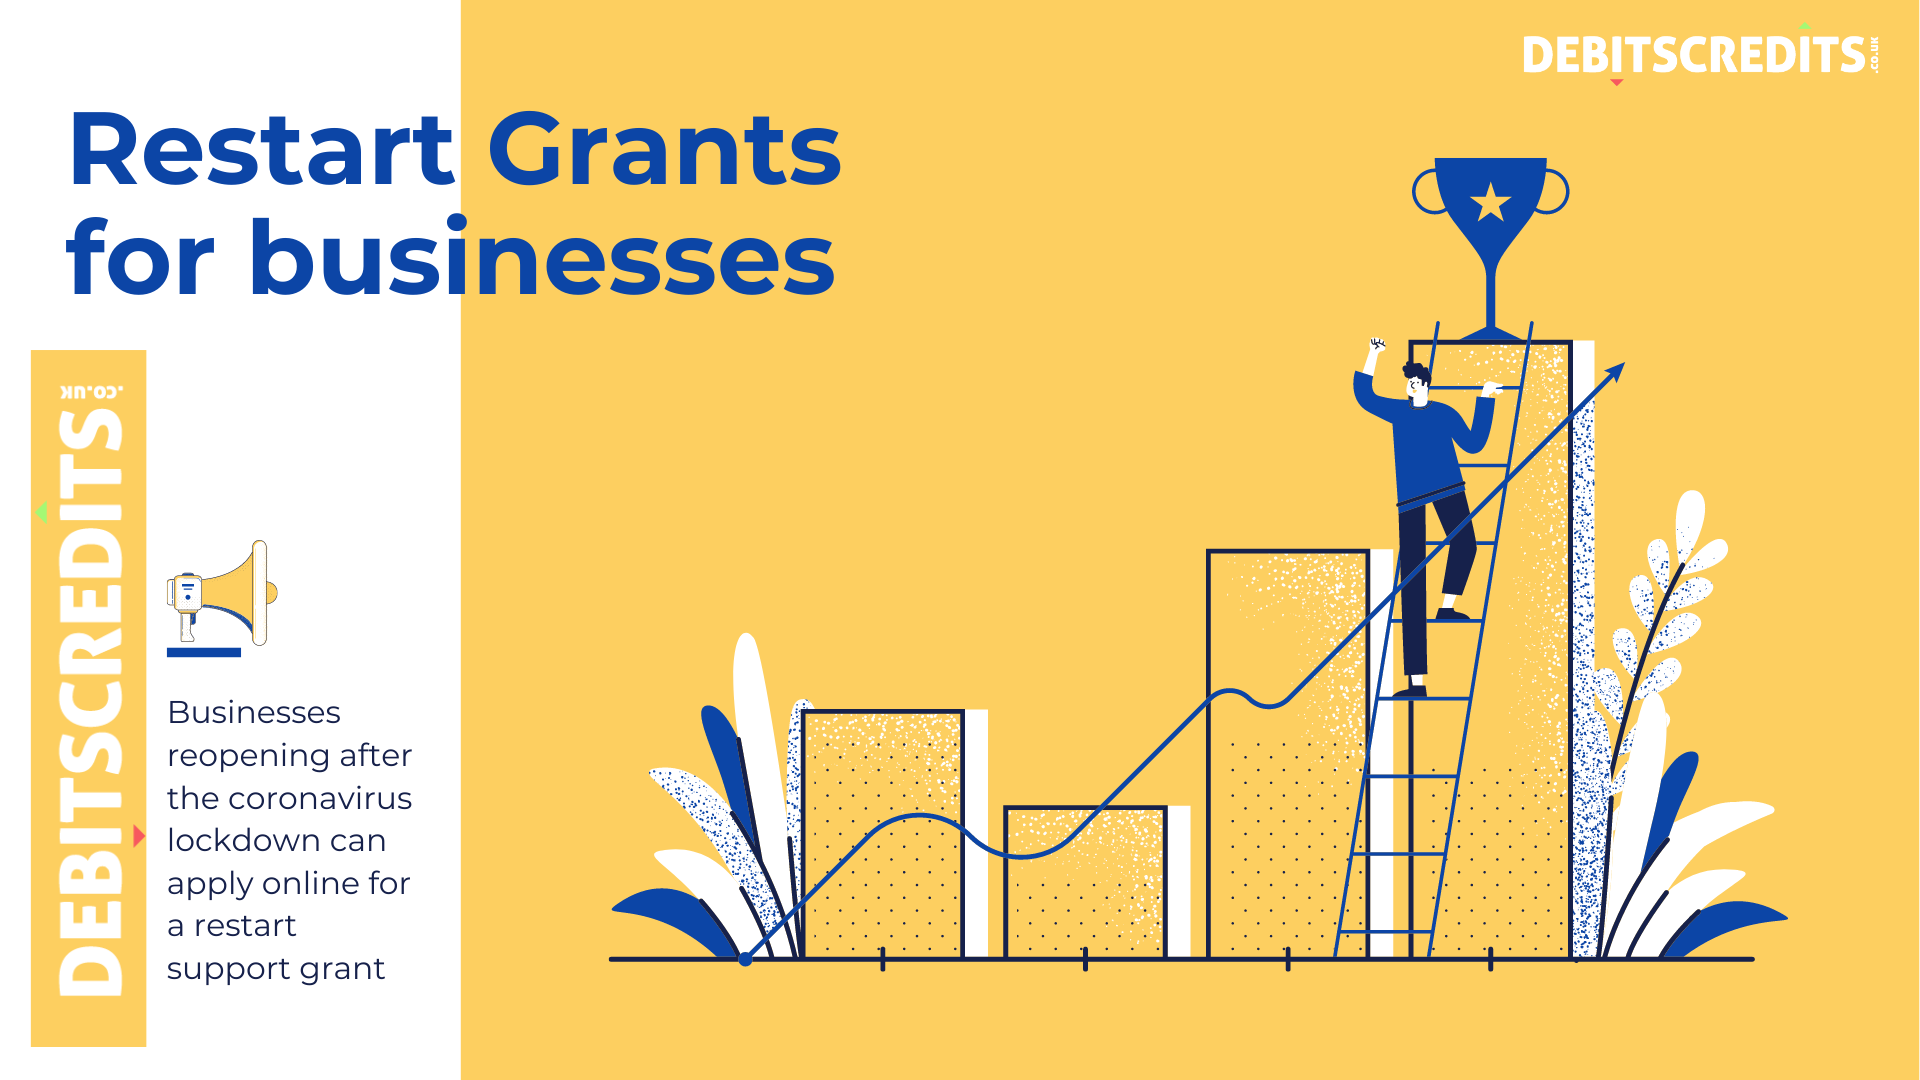 Restart grants for businesses